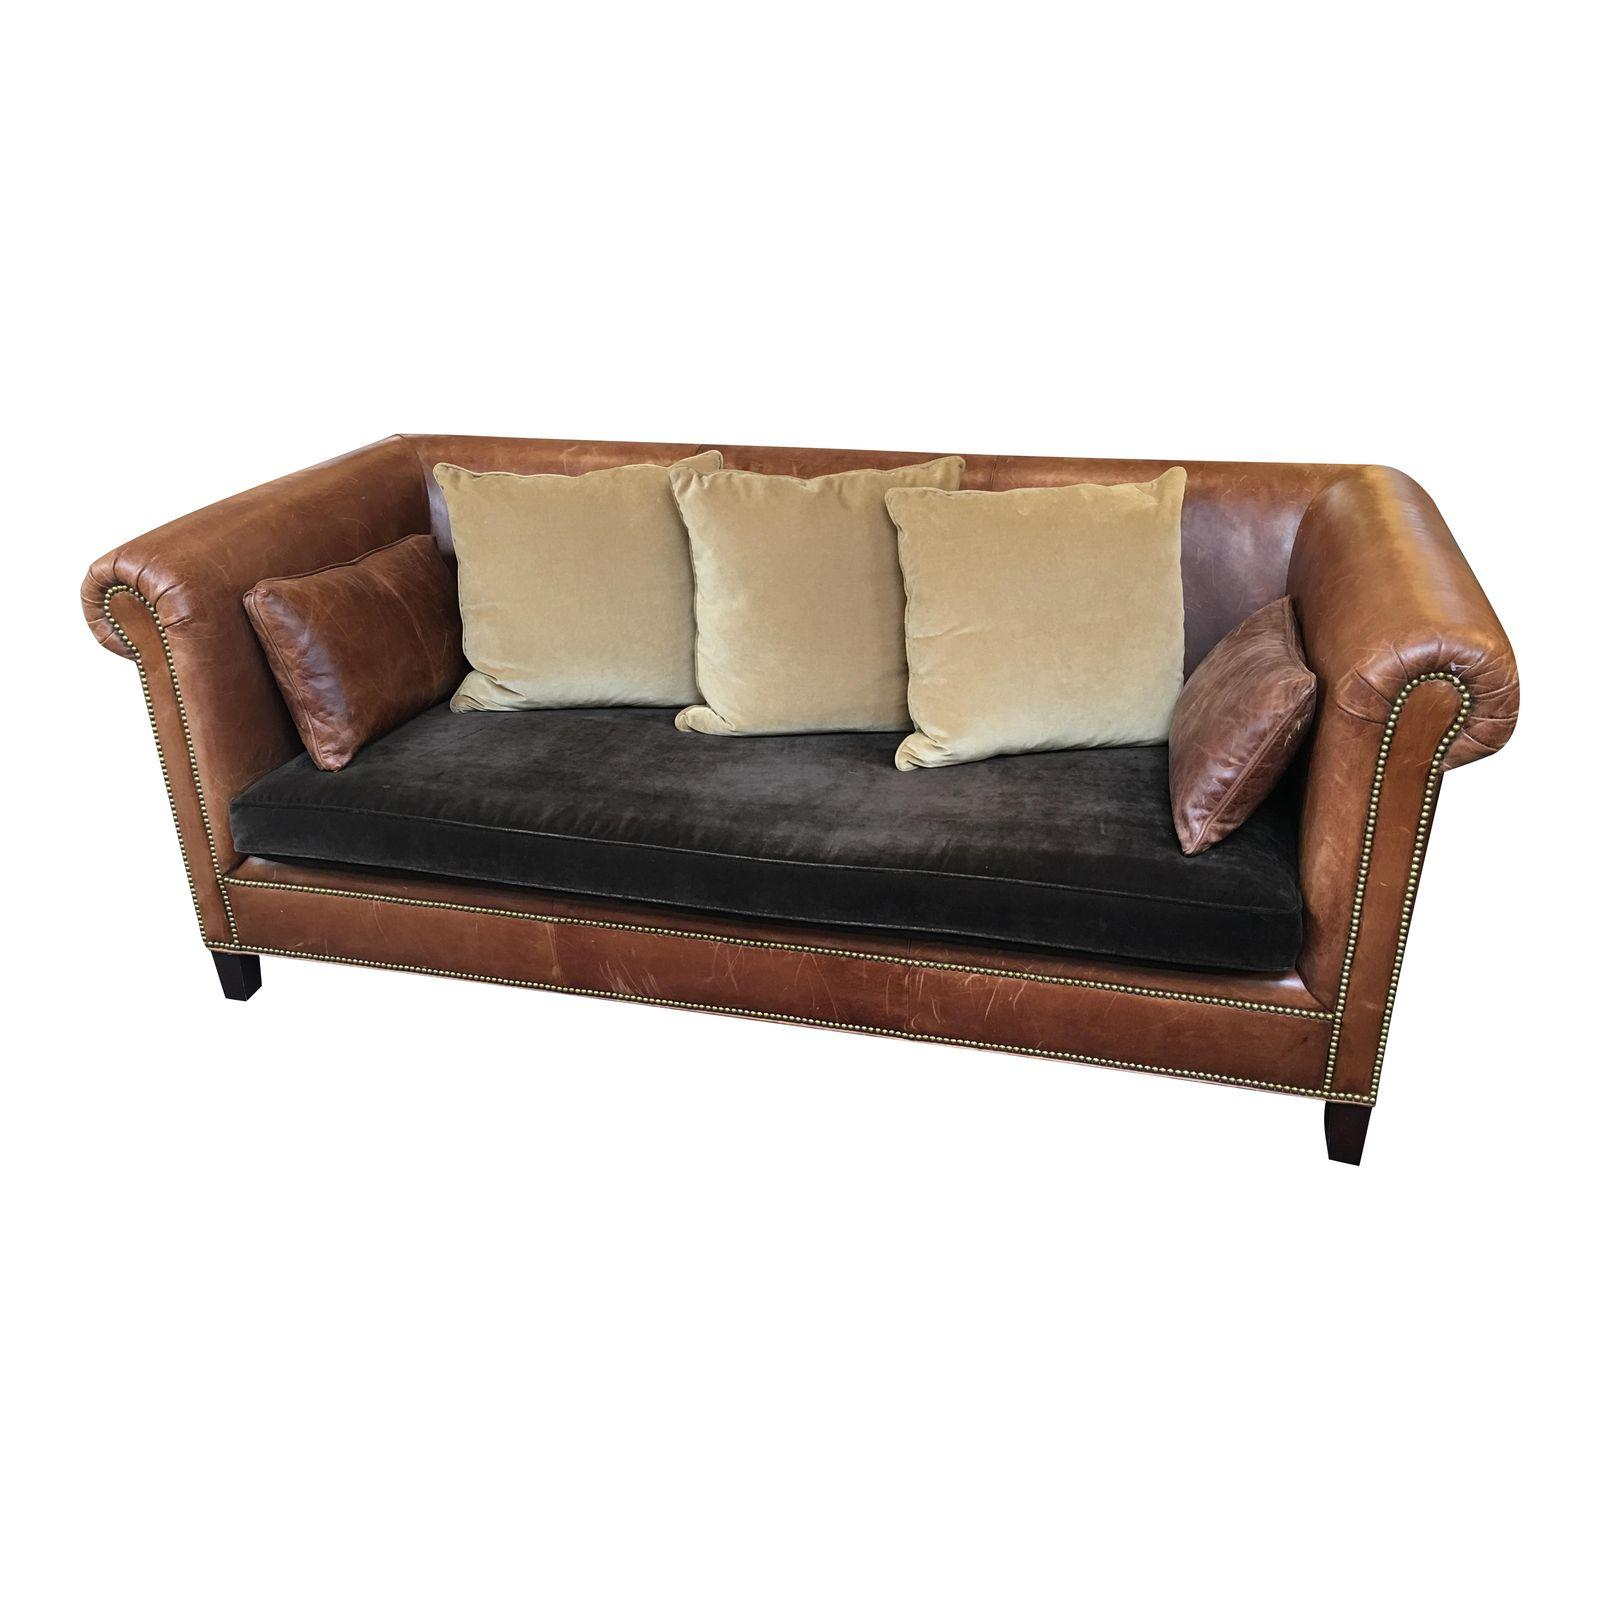 Superb Ralph Lauren Brompton Leather Sofa Design Plus Gallery Ncnpc Chair Design For Home Ncnpcorg